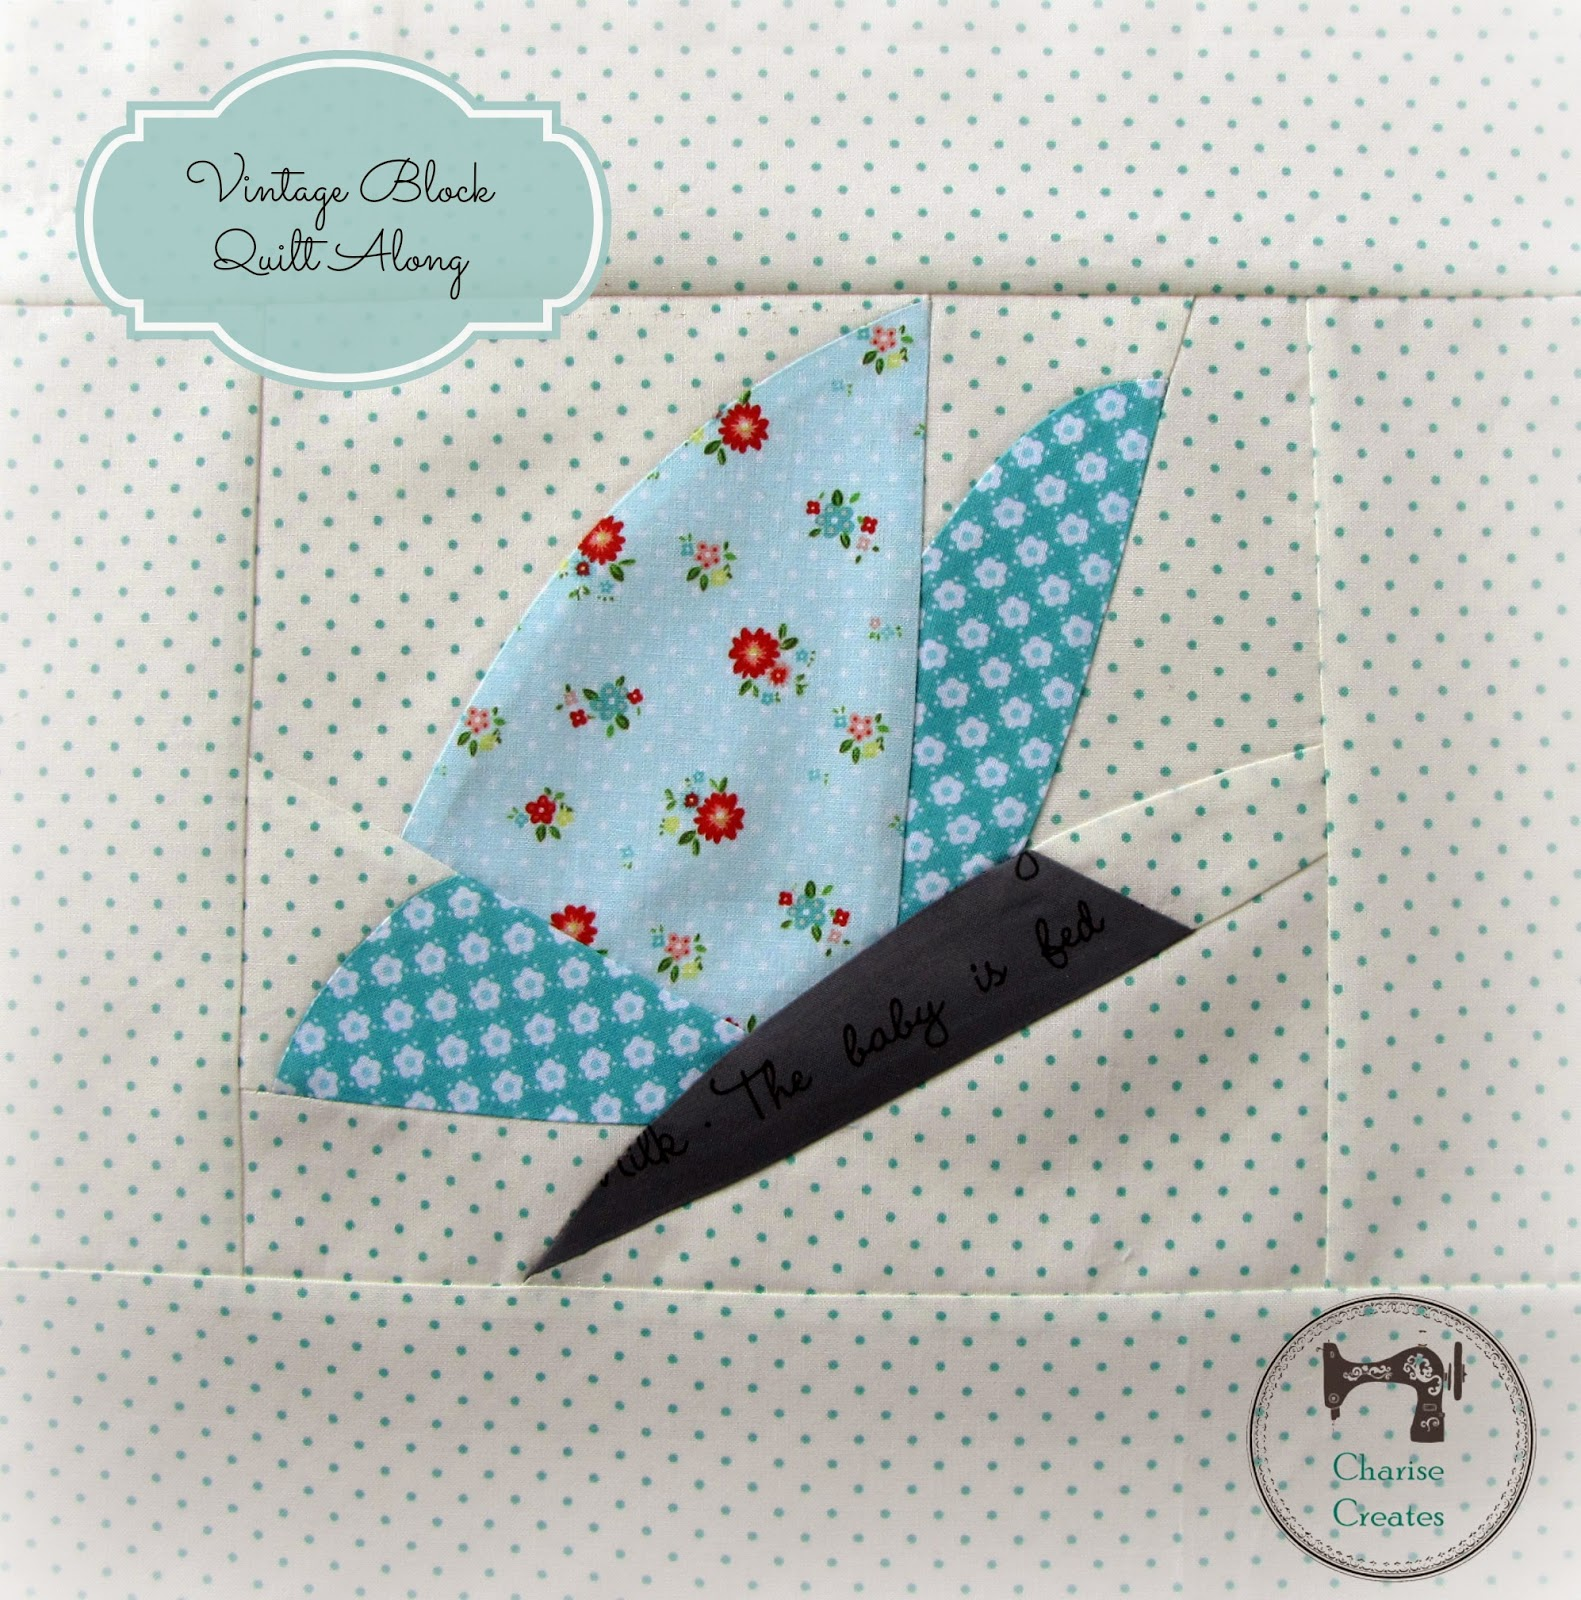 Charise Creates: Vintage Block Quilt Along ~ Spring Butterfly ...